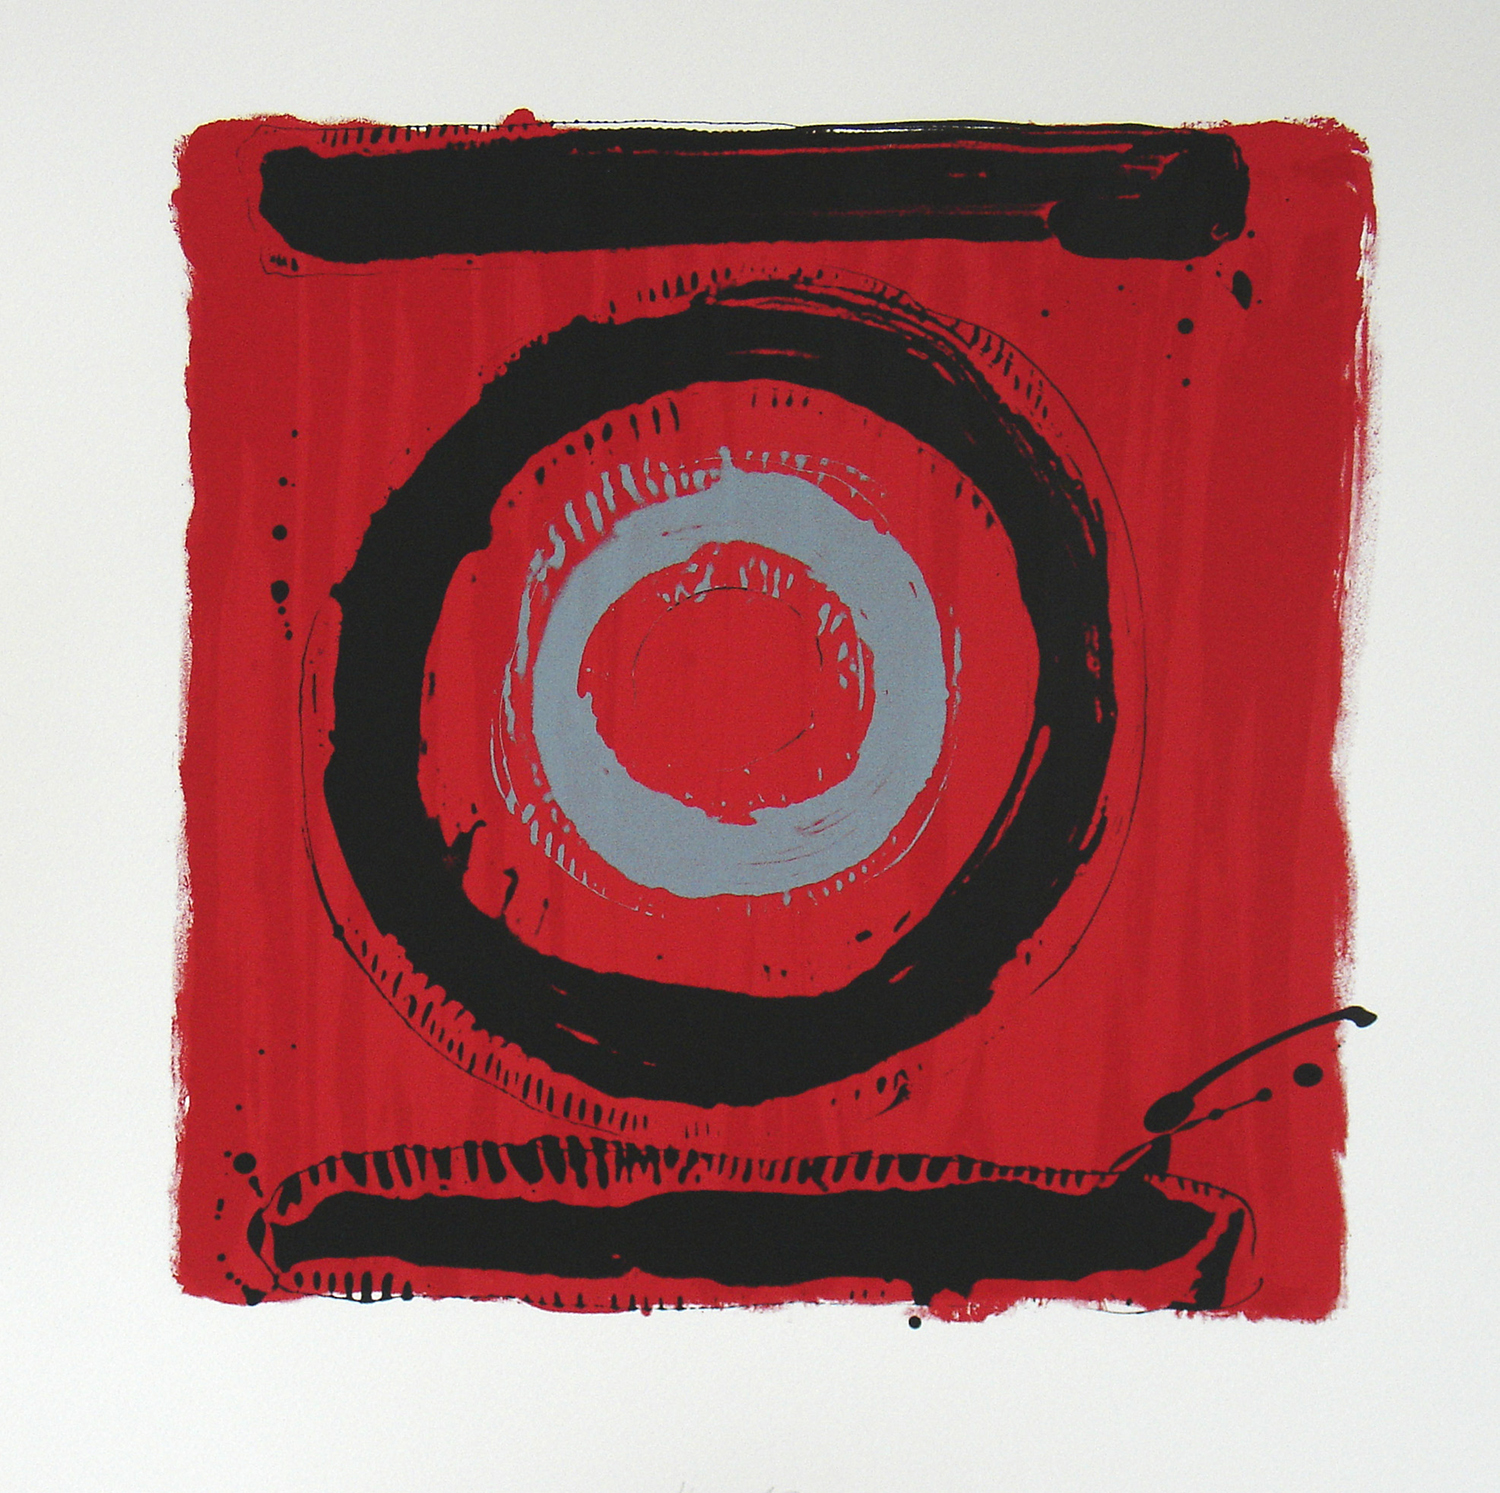 Kip Gresham, Two Loops    Date:   2006   Size (cm - unframed):   56 x 55   Technique:   Screenprint   Materials:   Somerset 300gsm   Edition size:   10   Publisher:   The Print Studio   Copyright:   The Artist    P.O.A.